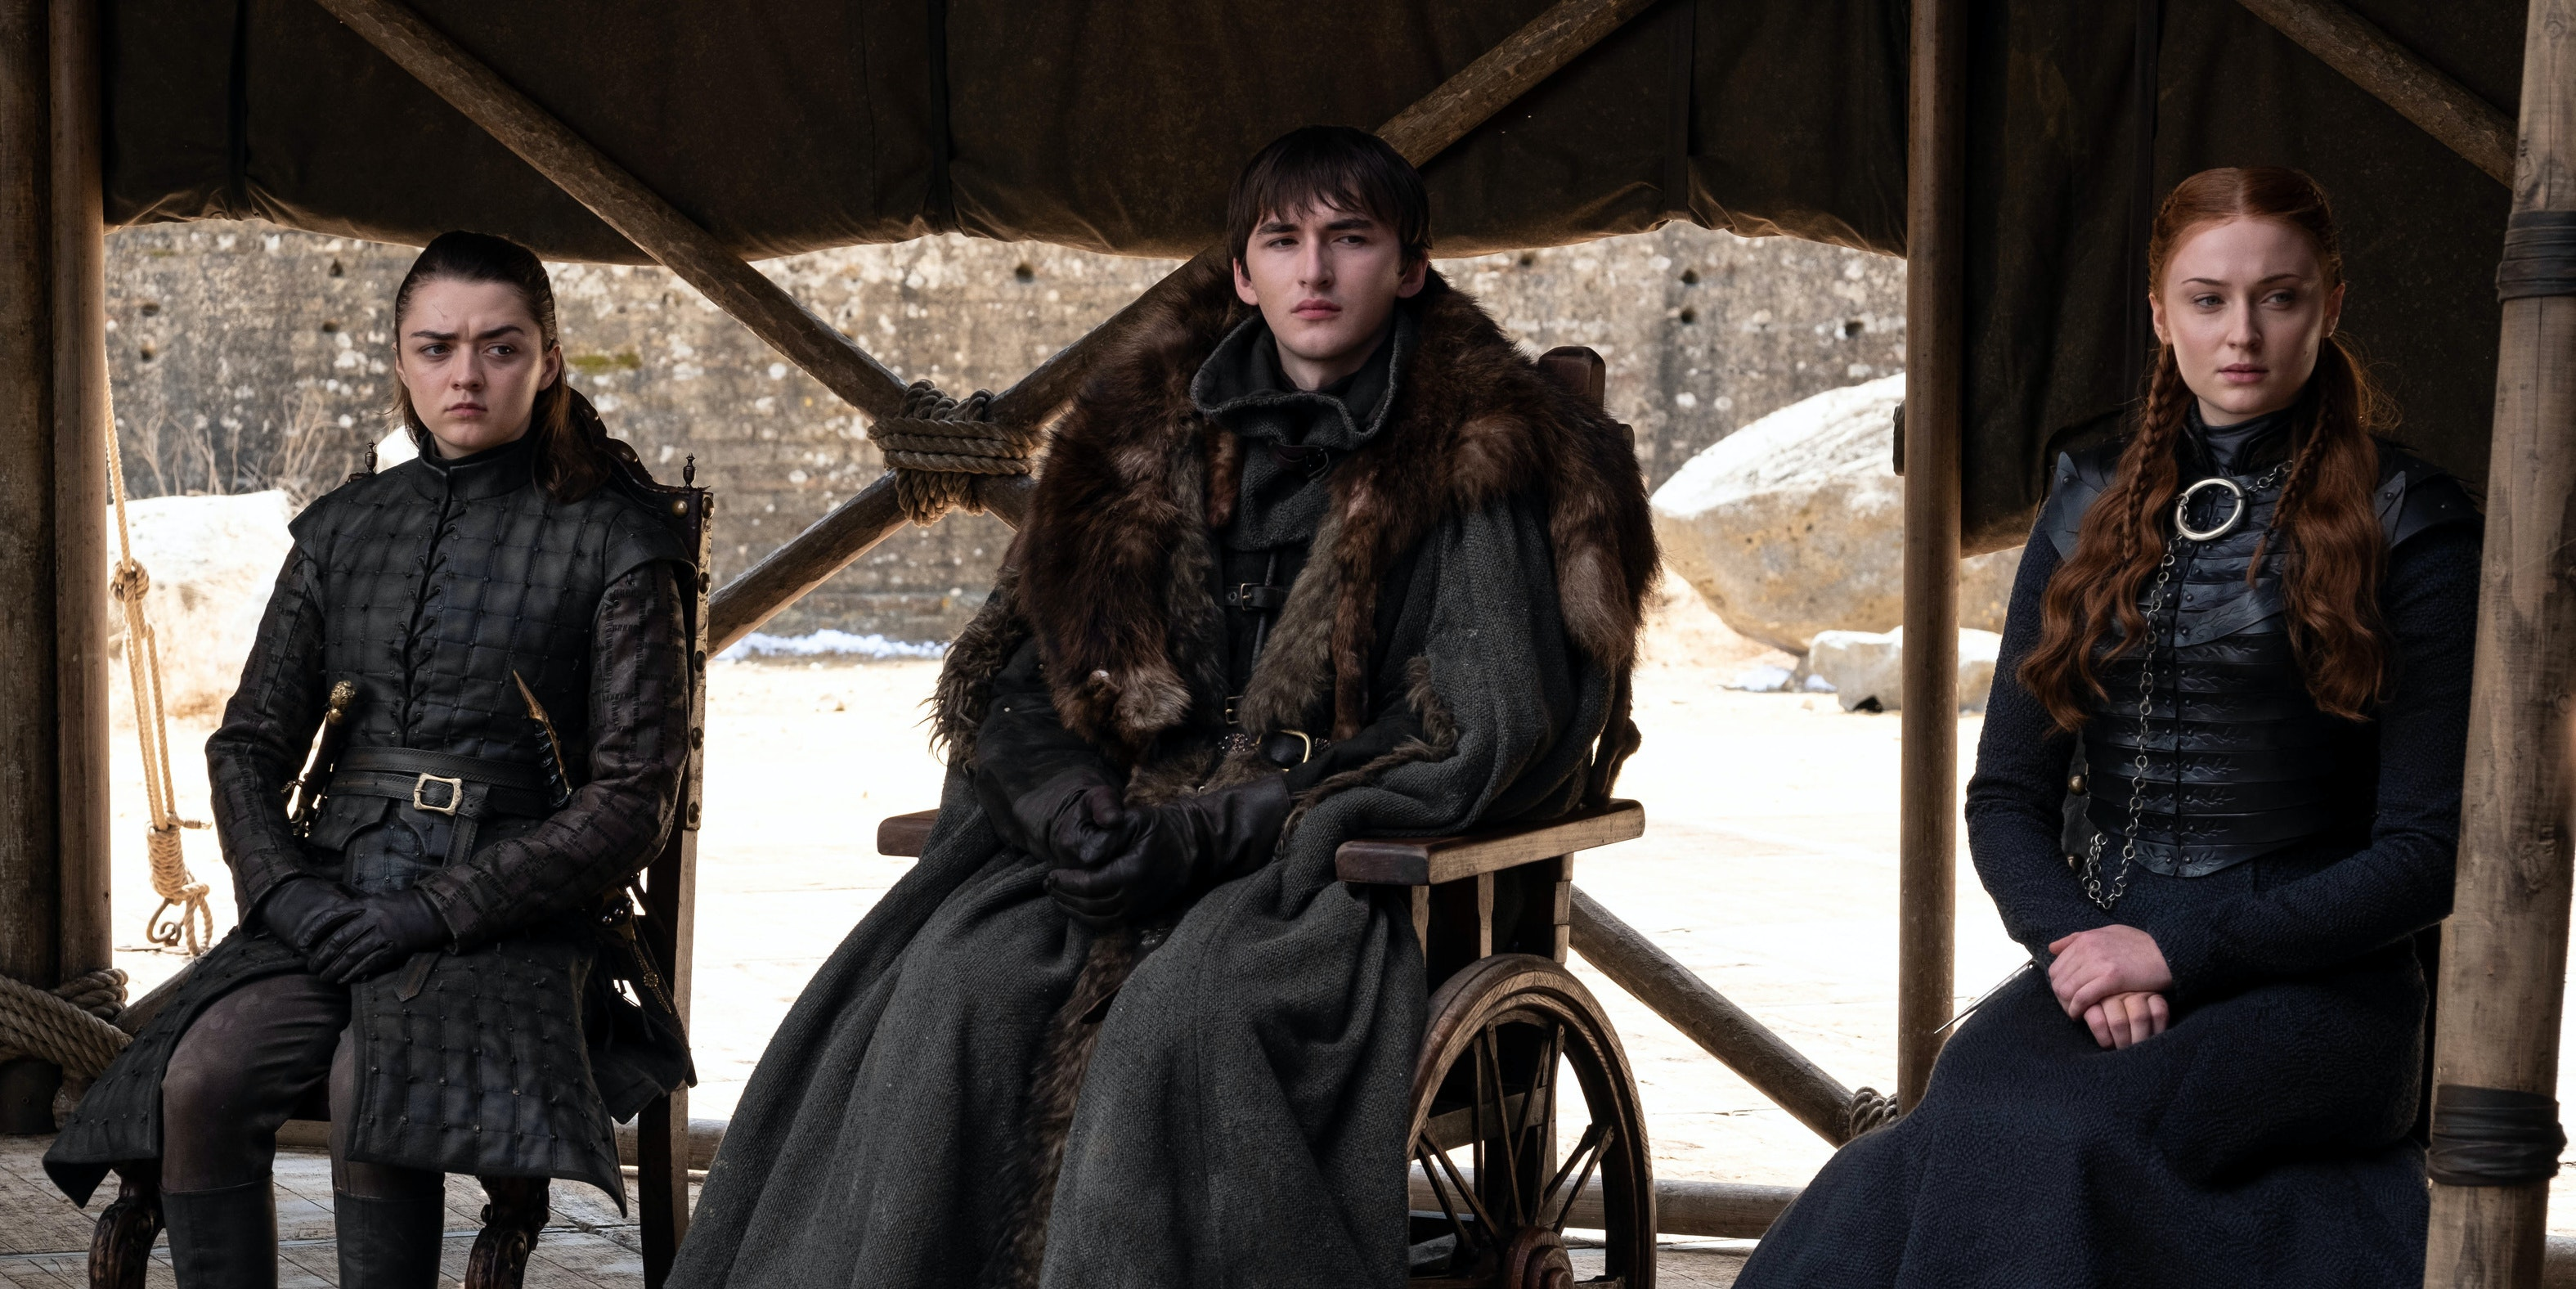 Unpacking the New Politics of Westeros in the 'Game of Thrones' Finale